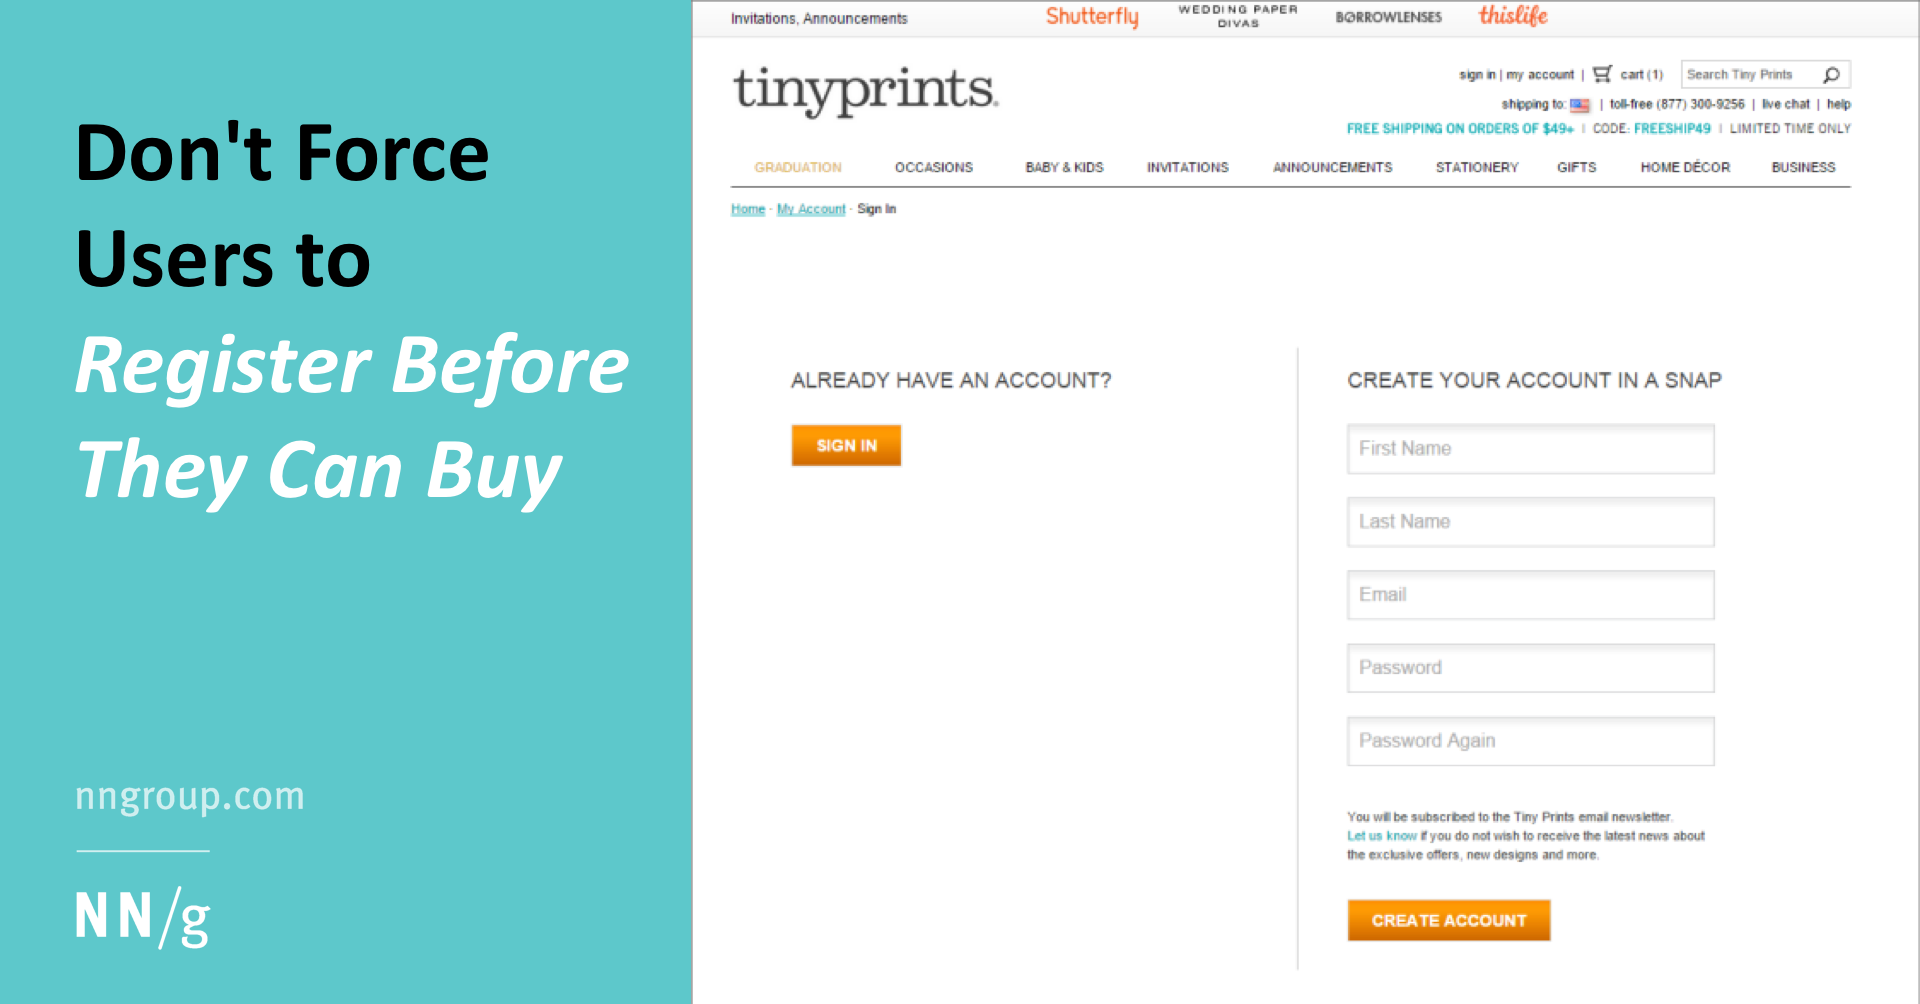 Don't Force Users to Register Before They Can Buy